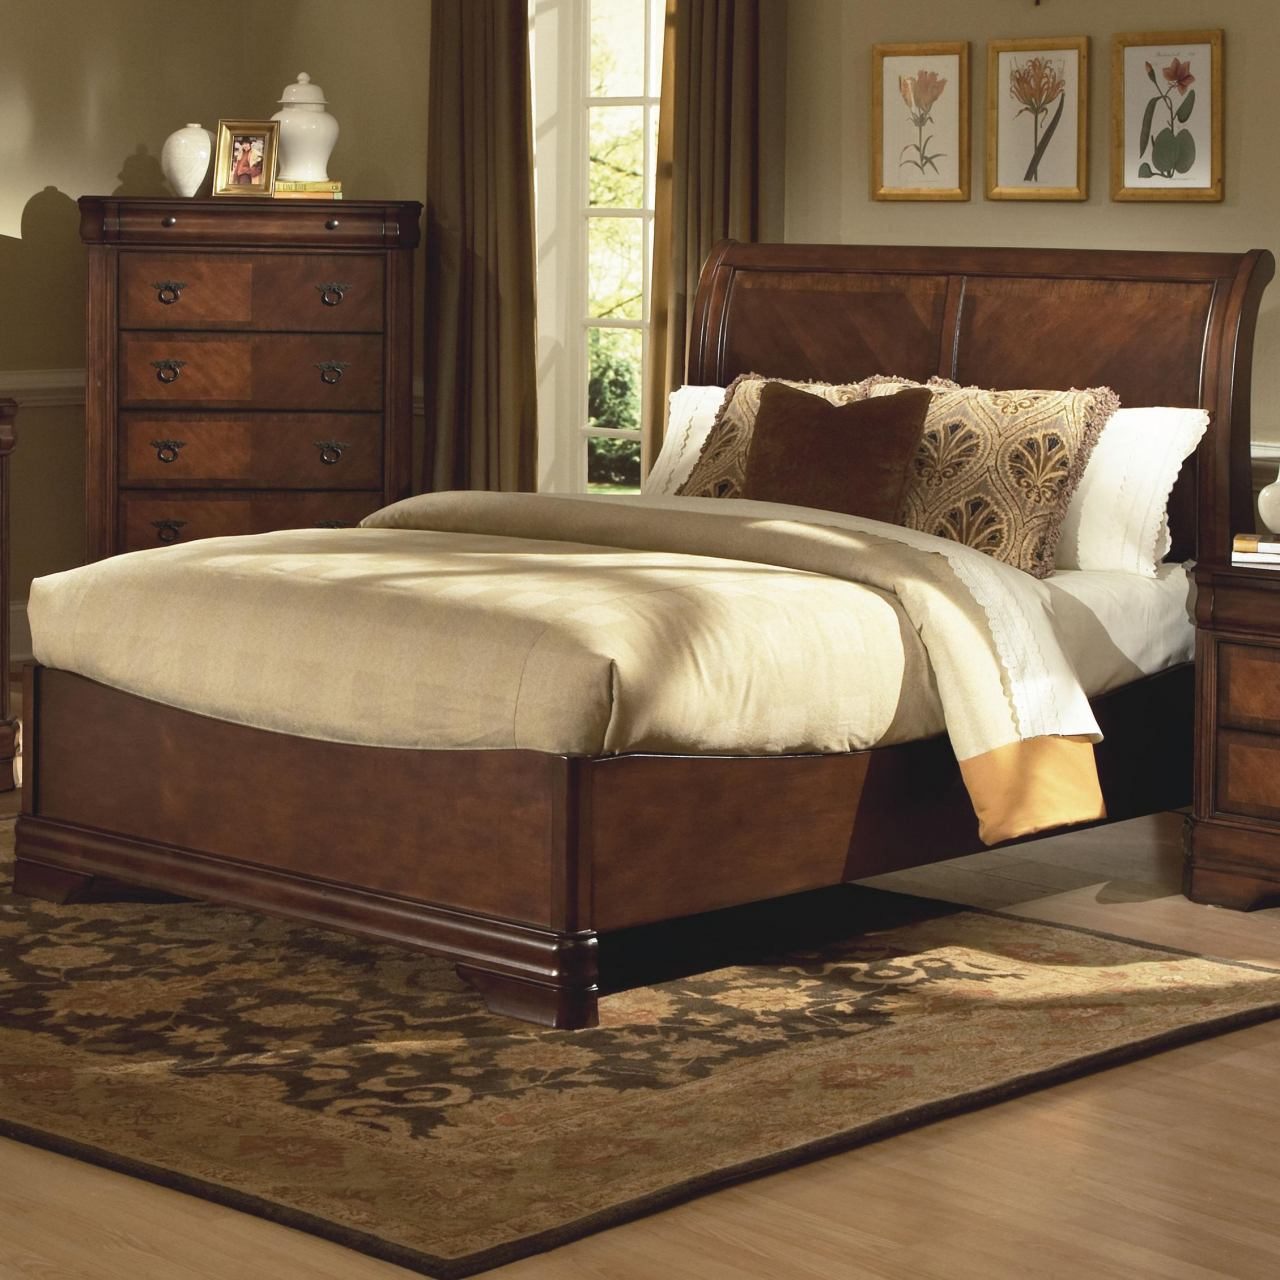 New Classic Sheridan Queen Sleigh Bed in Burnished Cherry Finish 00-005-310